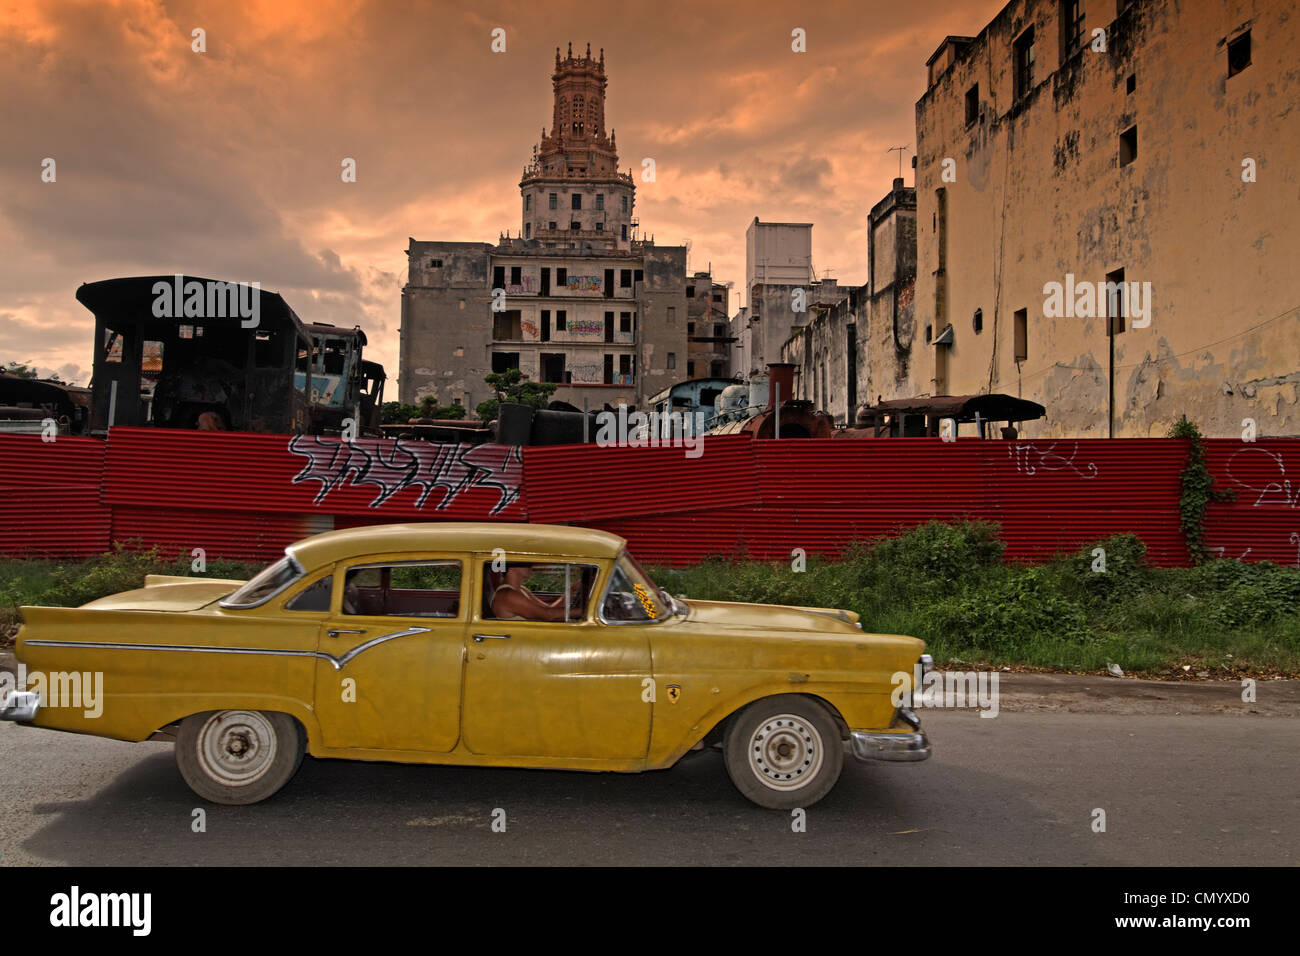 Oldtimer in Havanna, Cuba, Greater Antilles, Antilles, Carribean, West Indies, Central America, North America, America - Stock Image